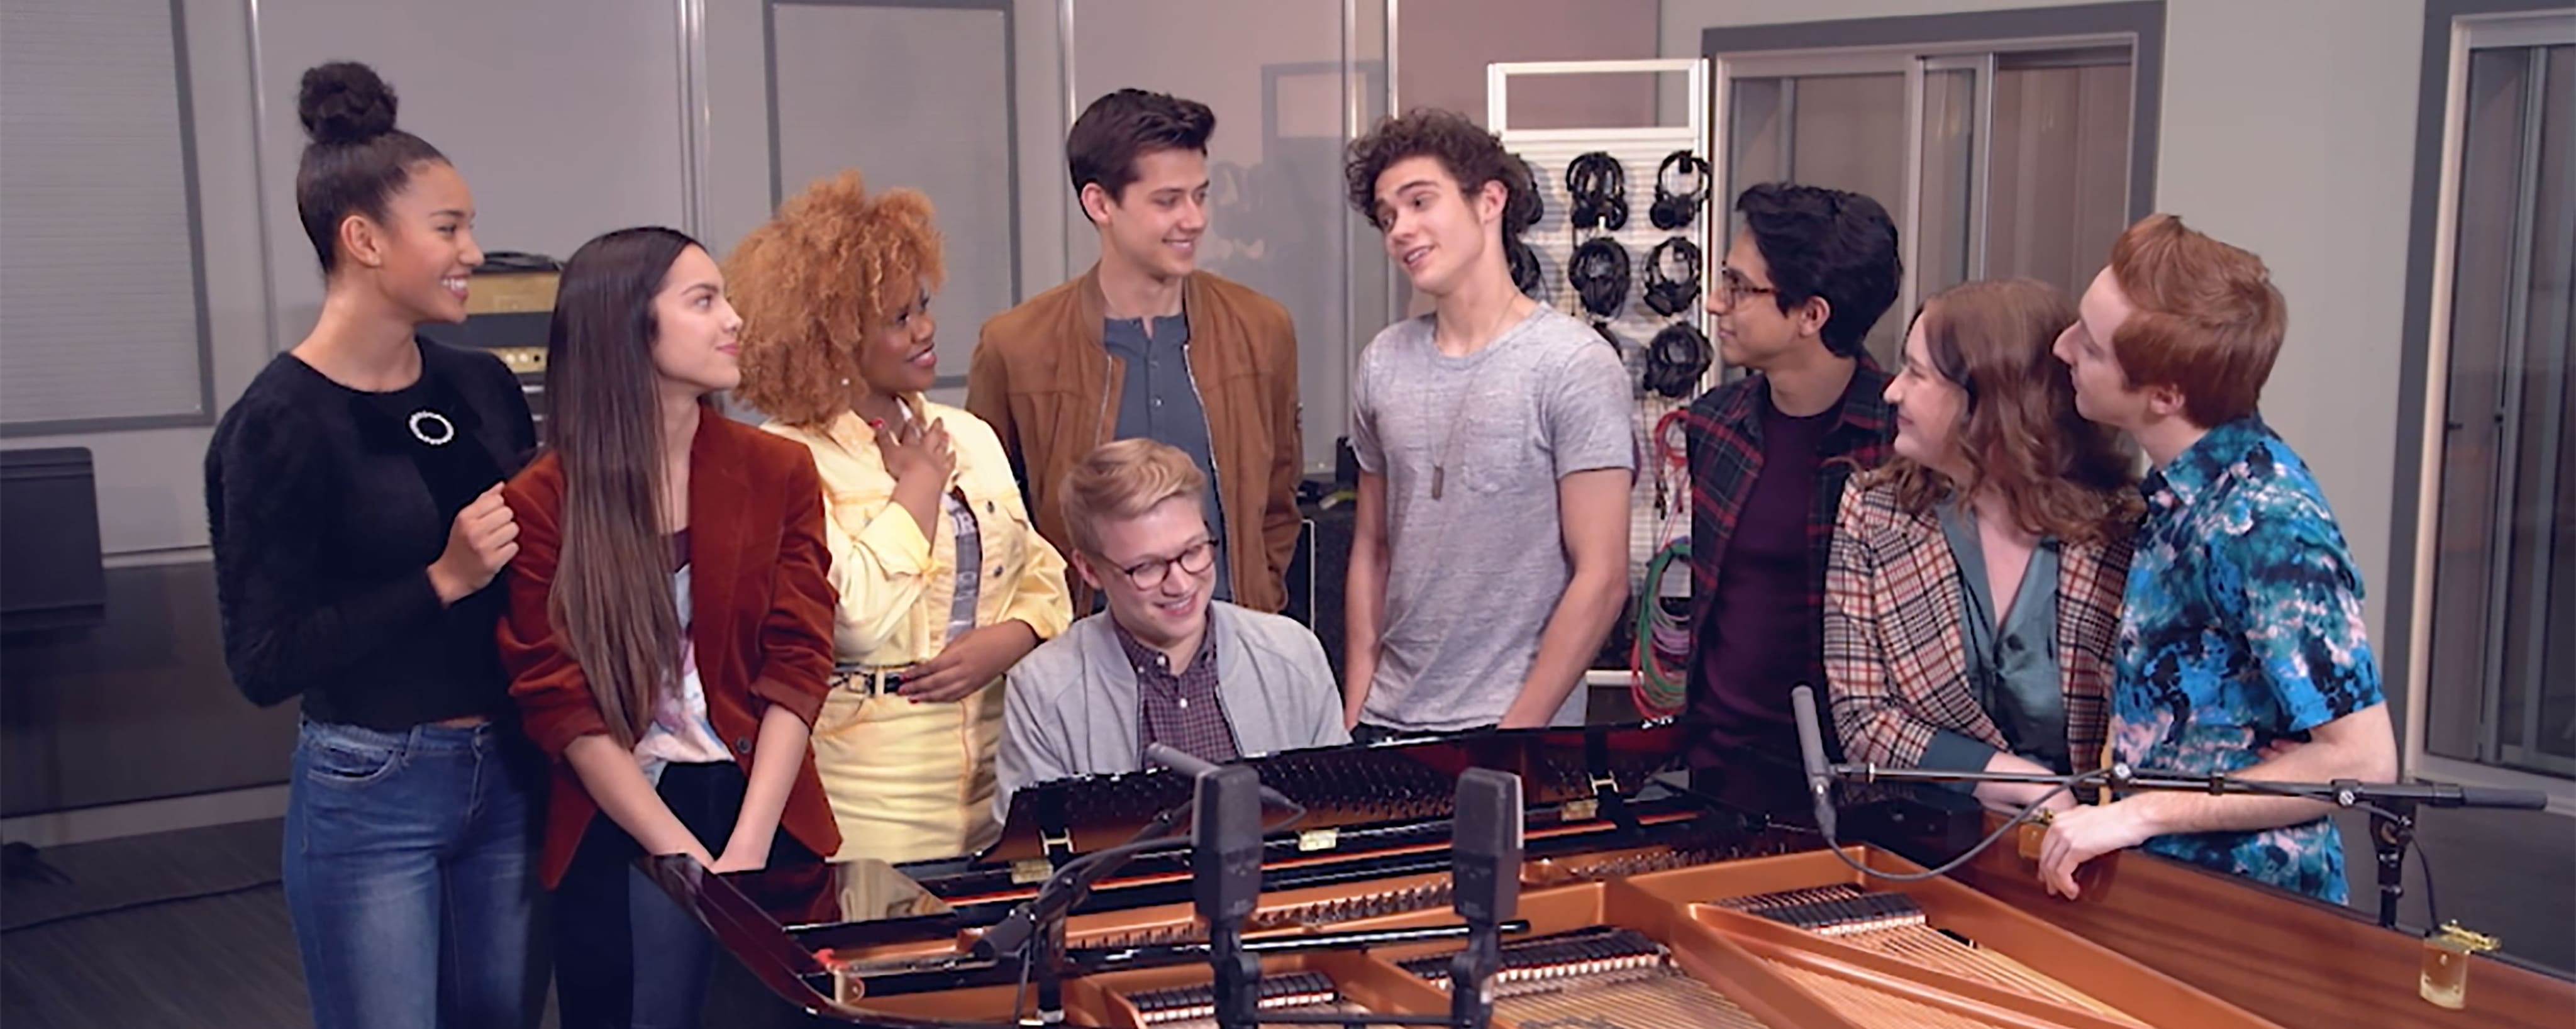 Cast of High School Musical: The Musical: The Series singing at a piano.